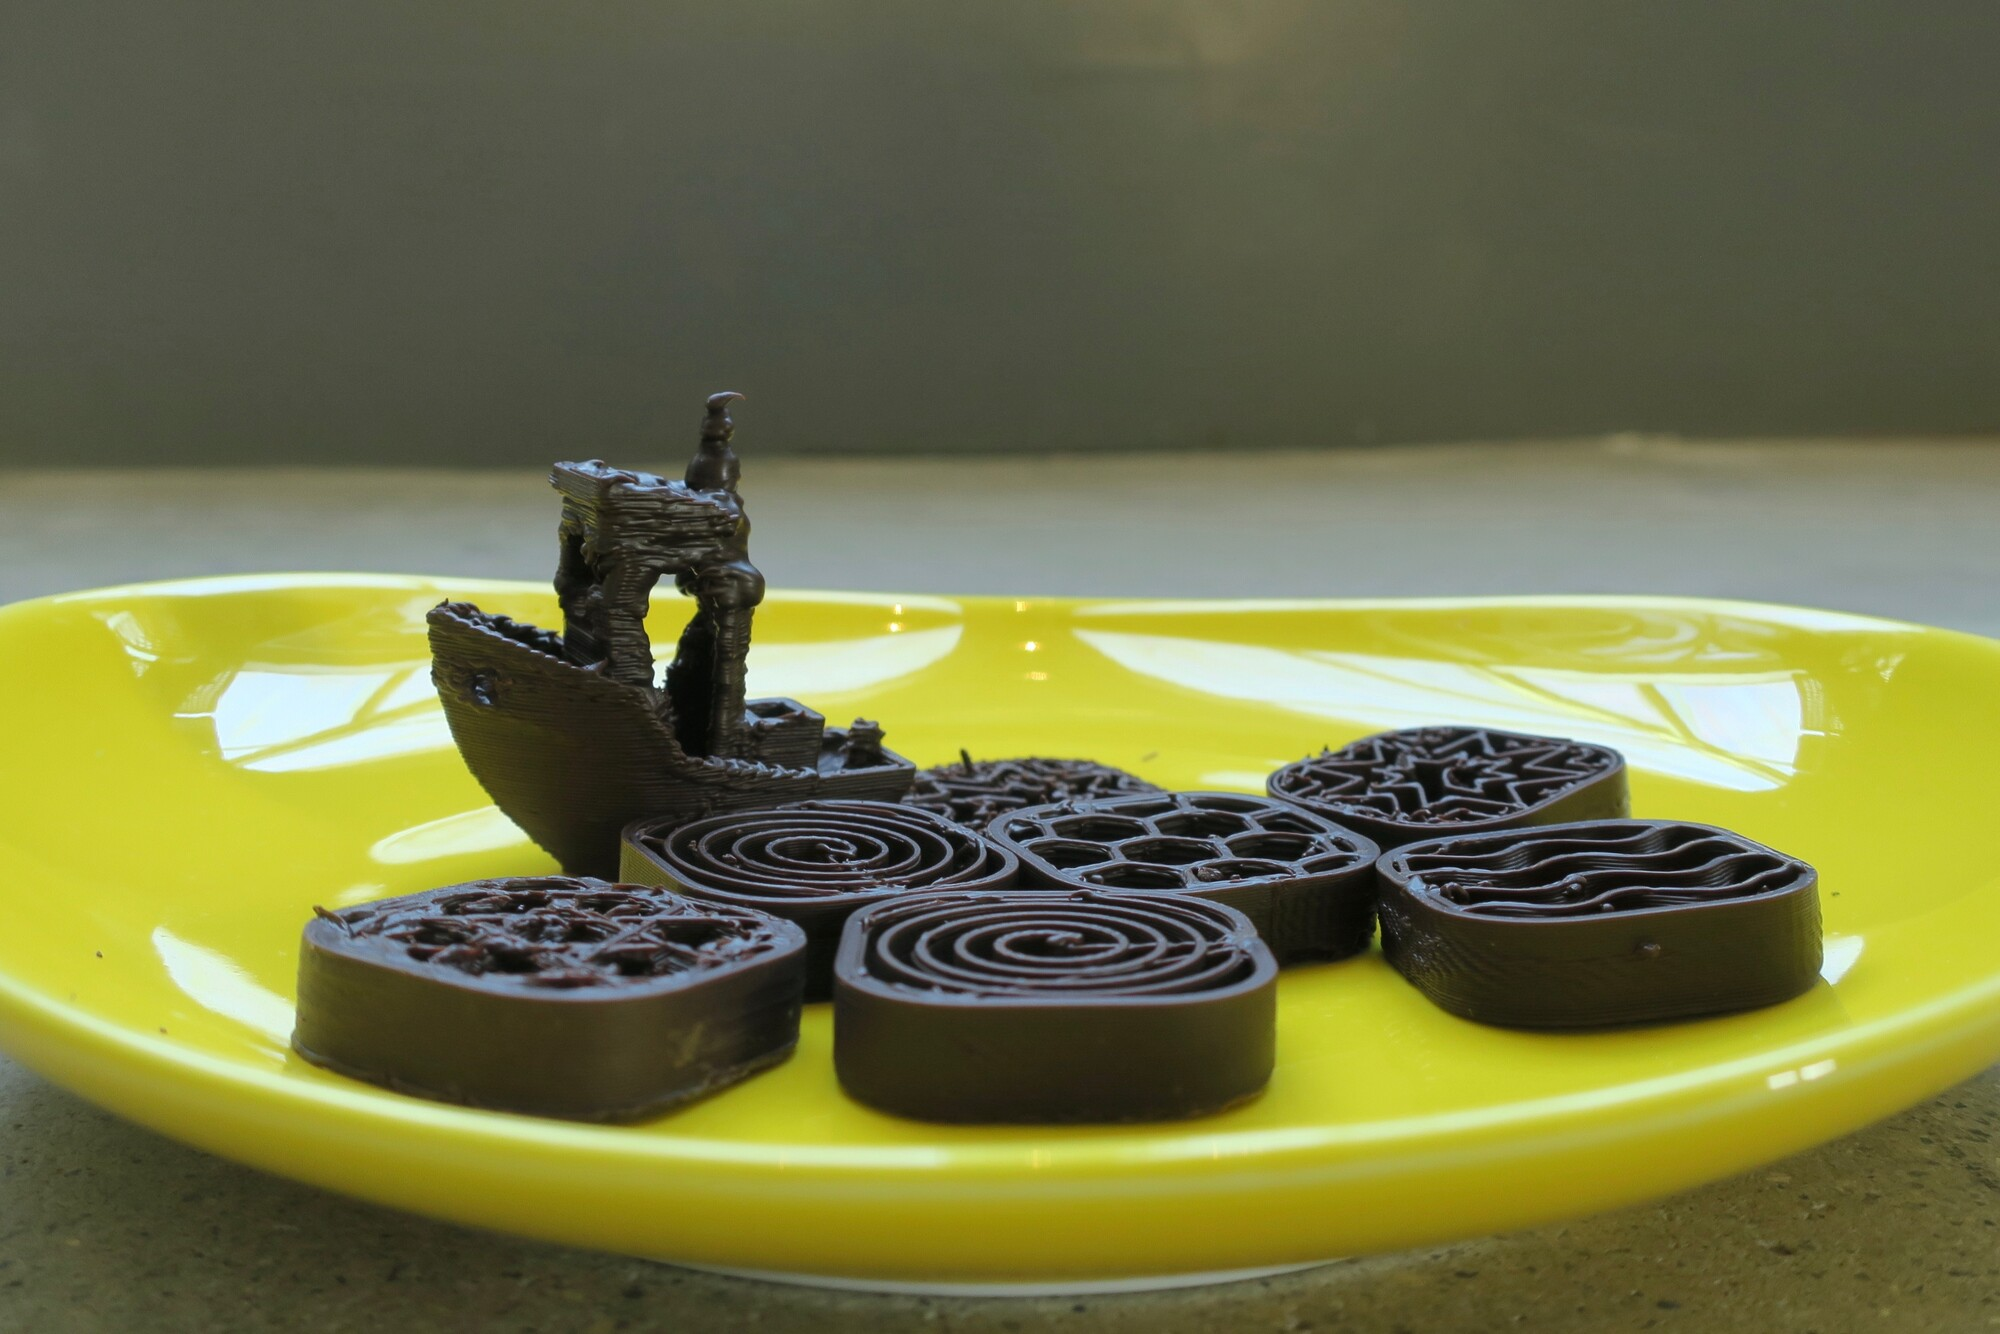 A dish of bespoke 3D printed chocolates